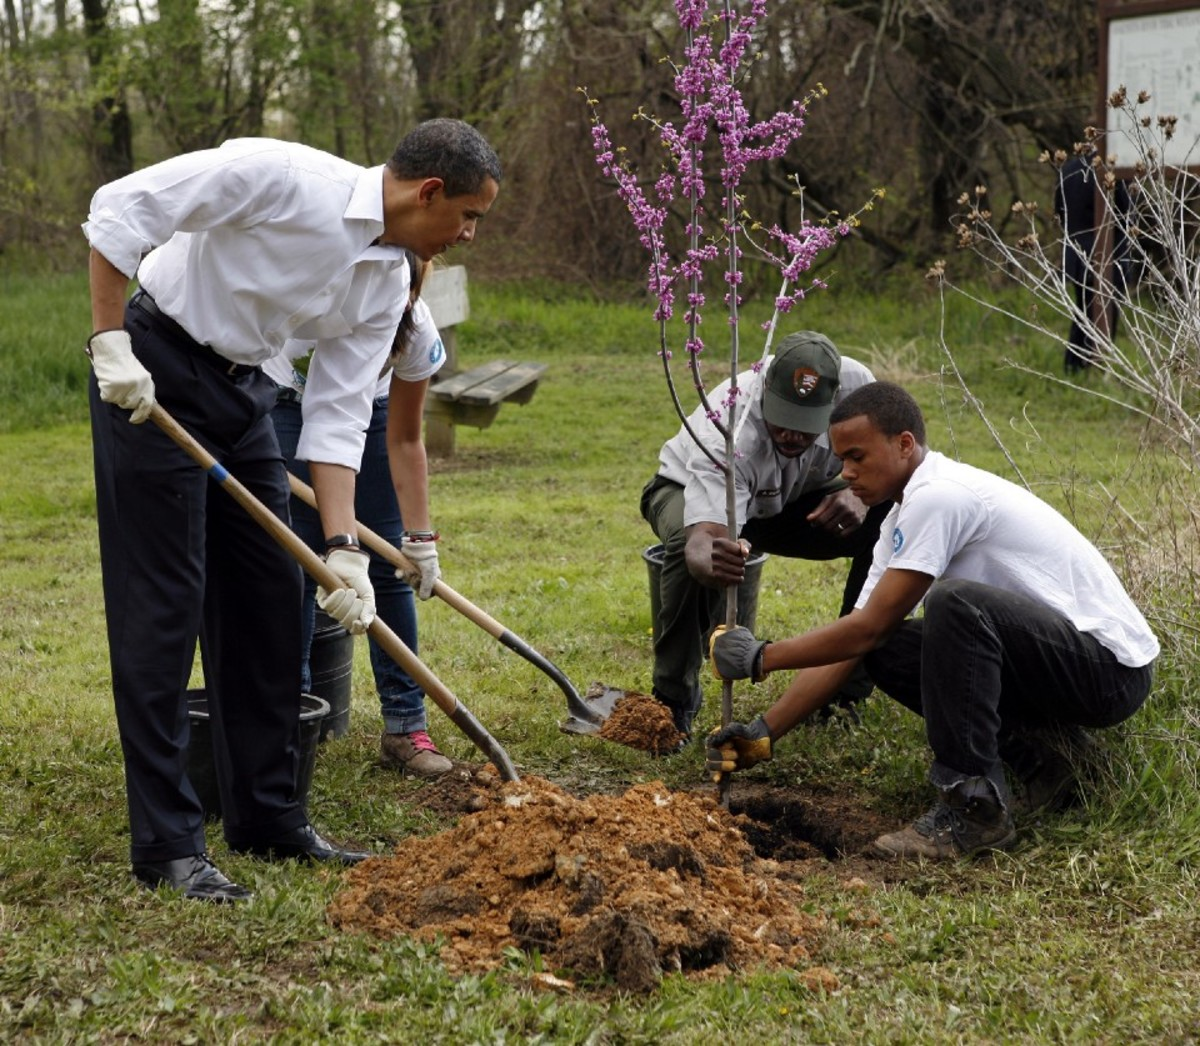 Barack Obama participates in a tree planting event on April 21st, 2009, in Washington, D.C.